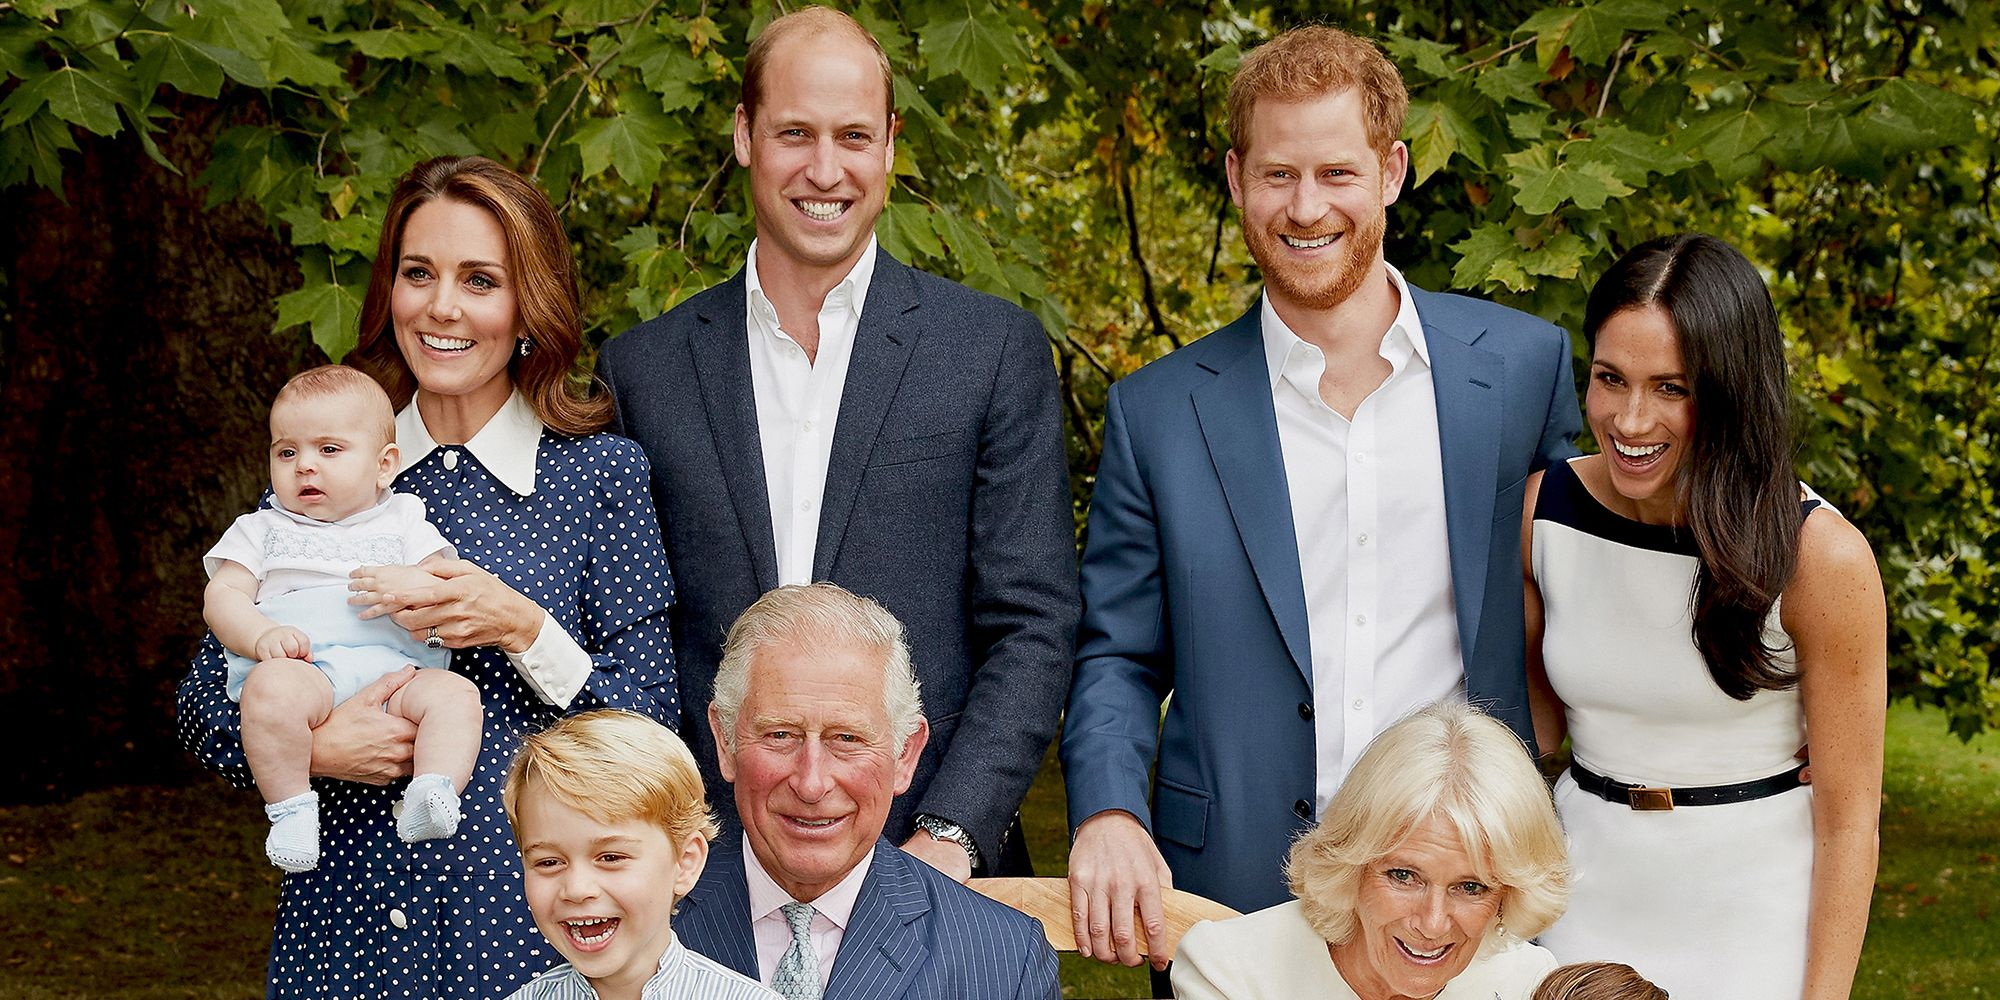 Why the royal family is laughing in prince charles birthday portraits